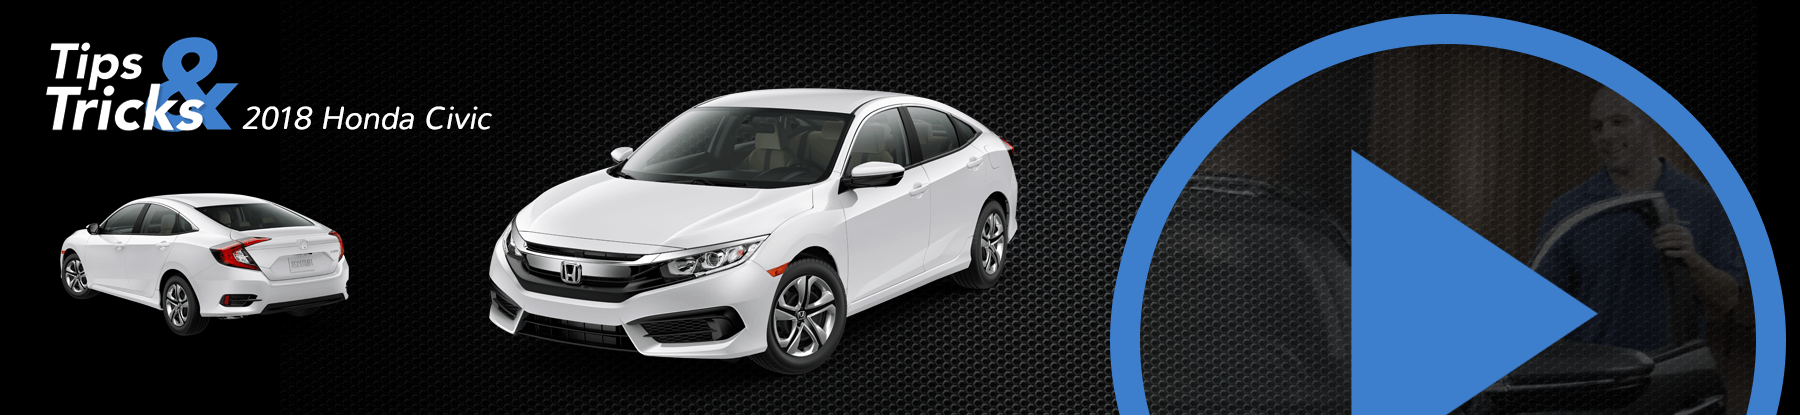 2018 Honda Civic Tips and Tricks Banner